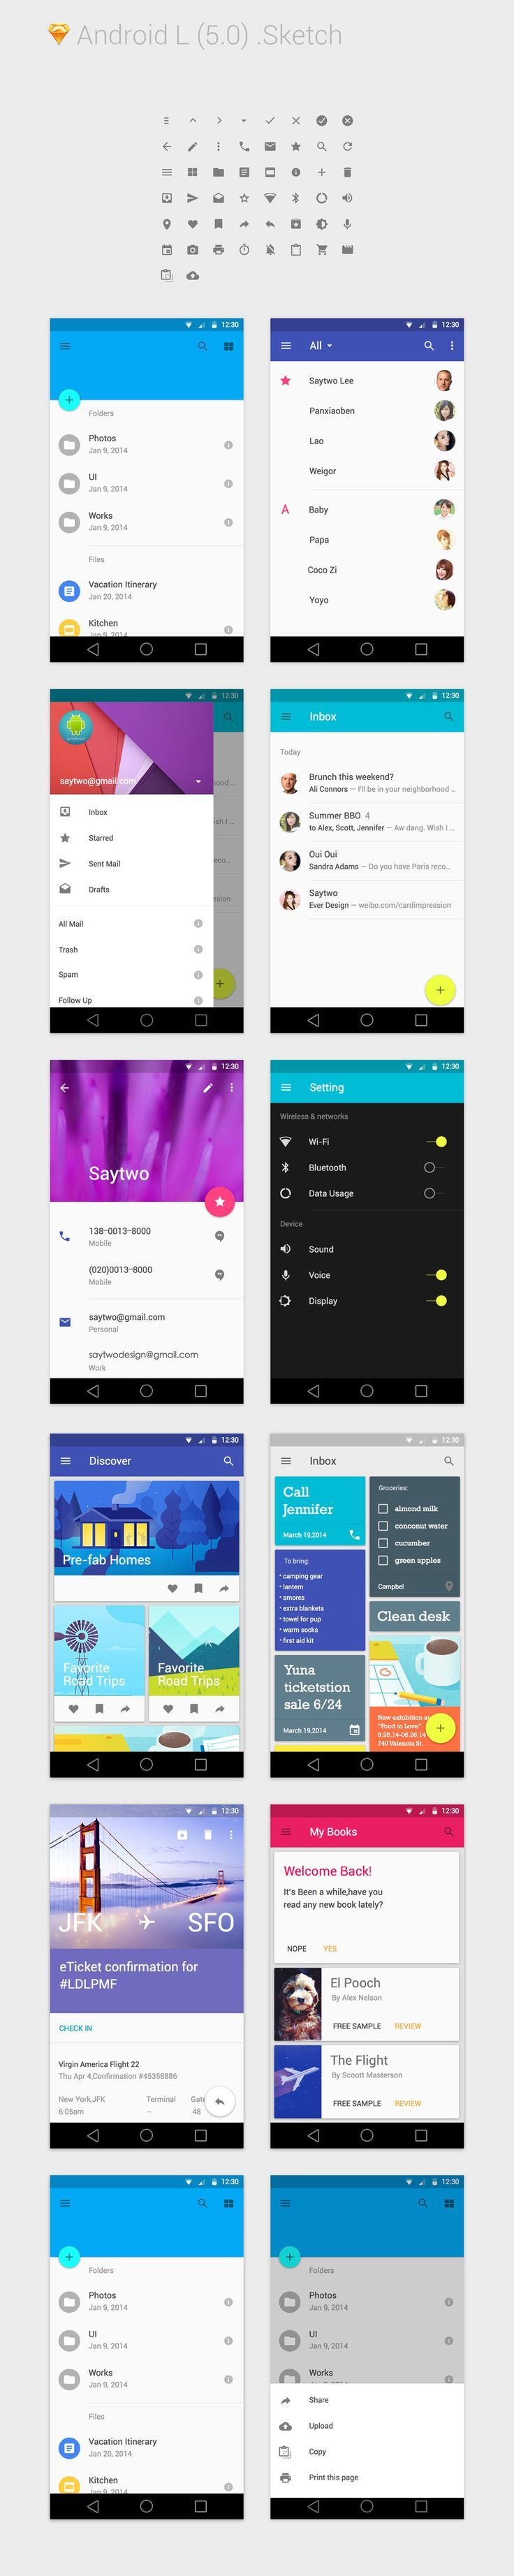 android l for sketch 3 sketch app pinterest